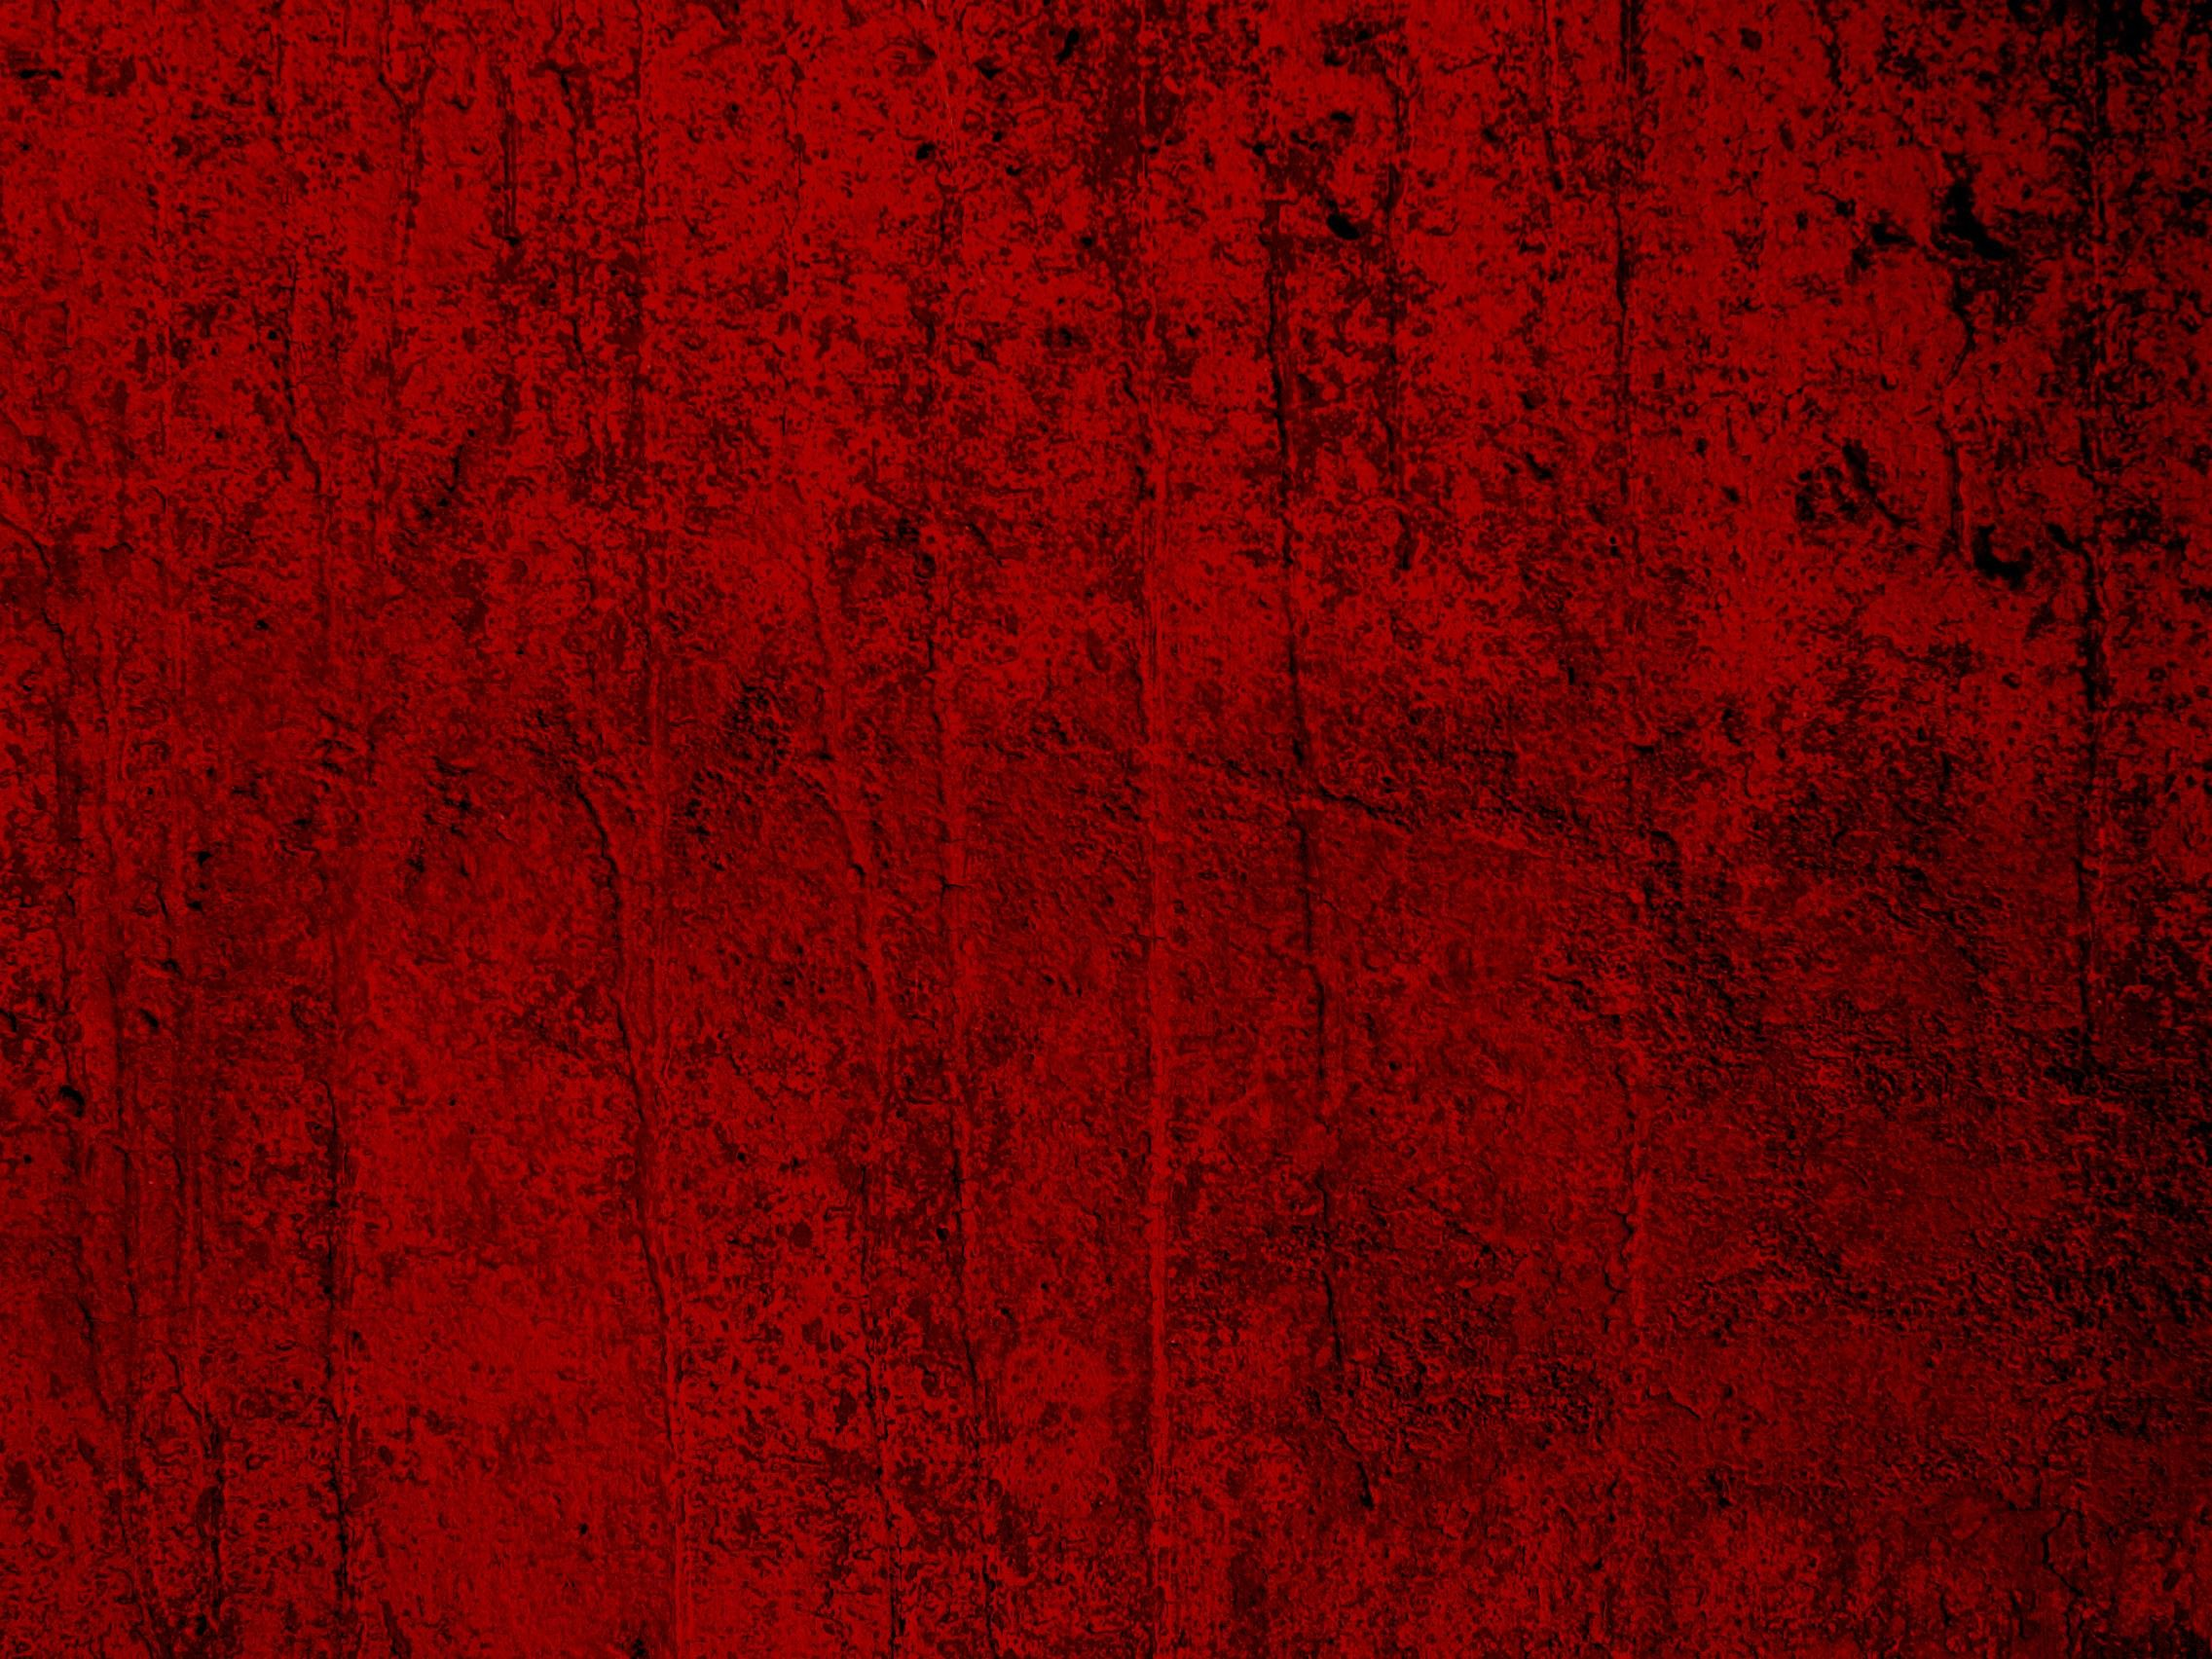 2272x1704 Red Texture Wallpaper